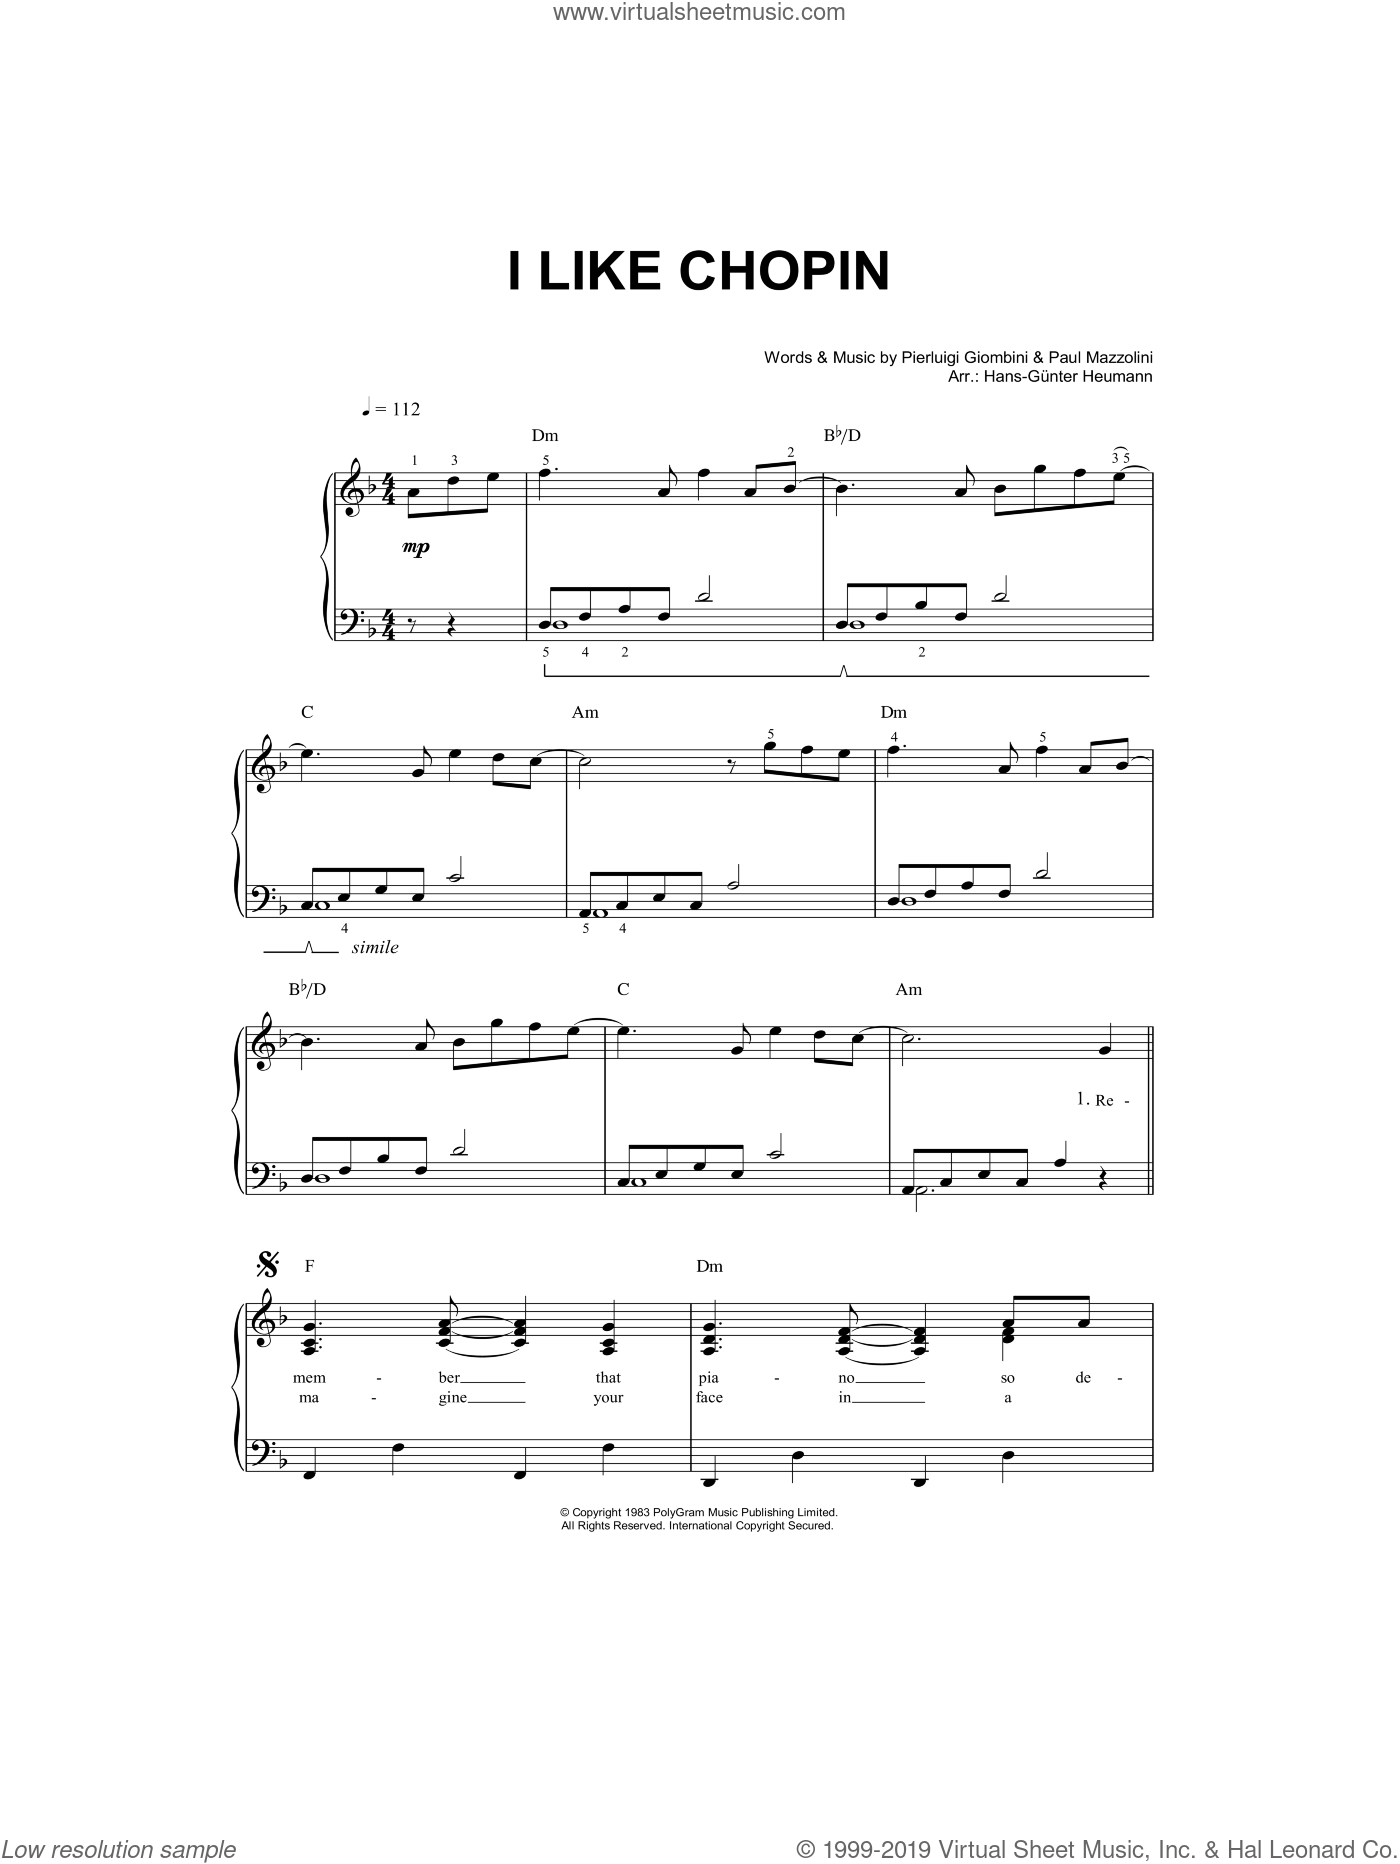 I Like Chopin sheet music for piano solo by Gazebo, Paul Mazzolini and Pierluigi Giombini, easy skill level